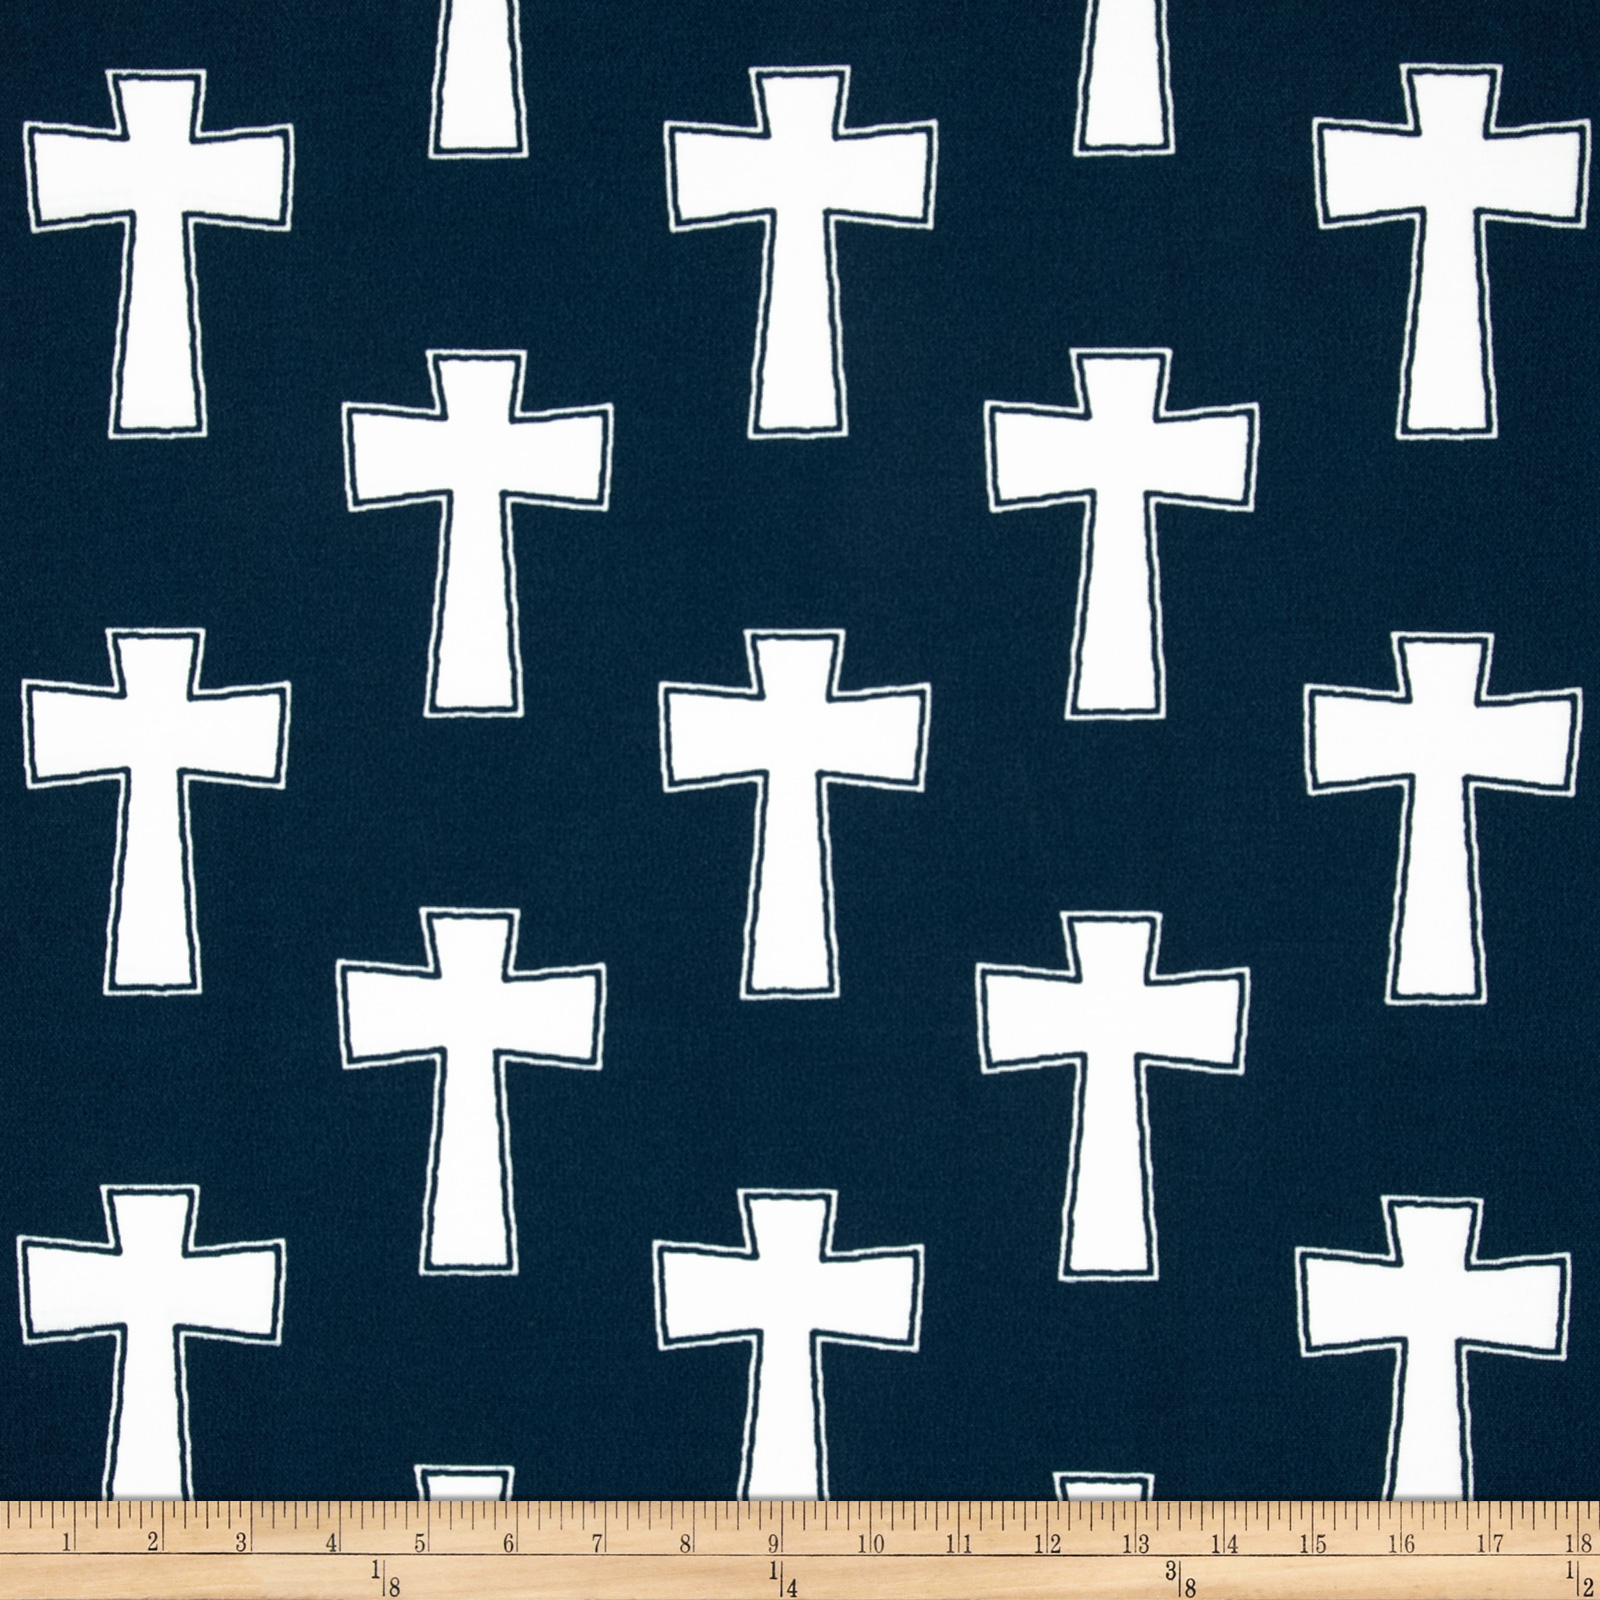 Premier Prints Indoor/Outdoor Cross Oxford Fabric